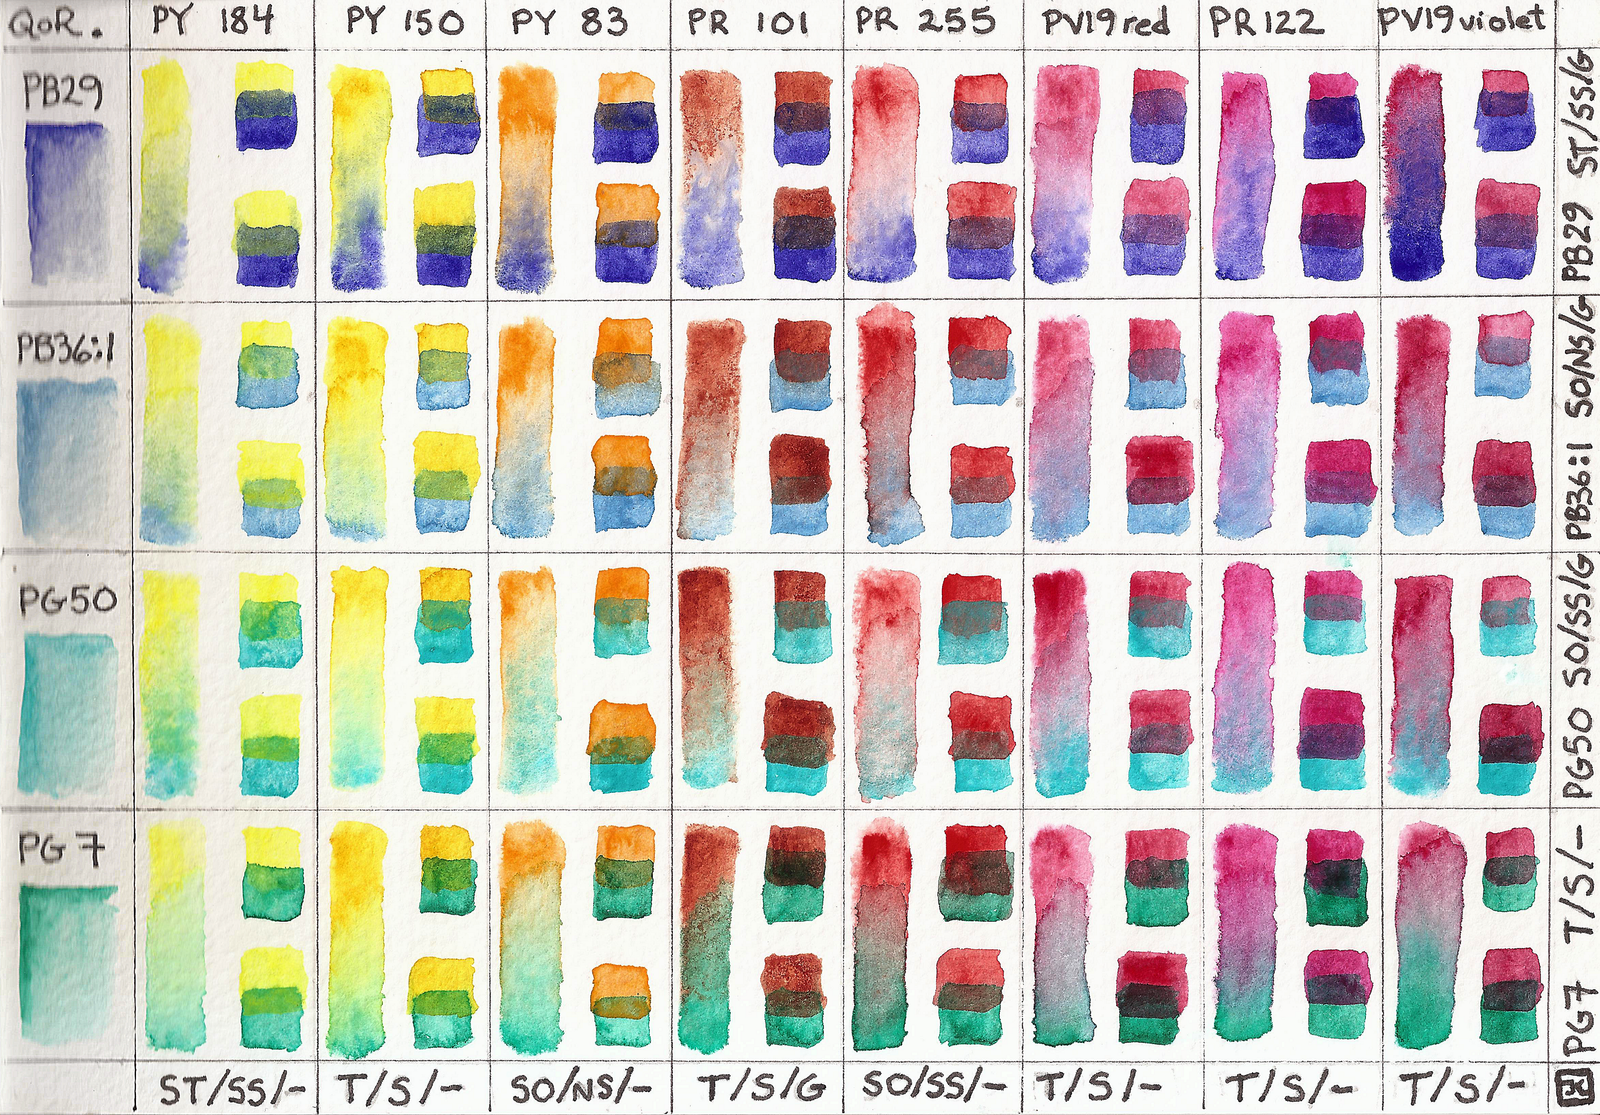 Watercolor warm cool mixing chart by shadoj on deviantart watercolor warm cool mixing chart by shadoj nvjuhfo Choice Image